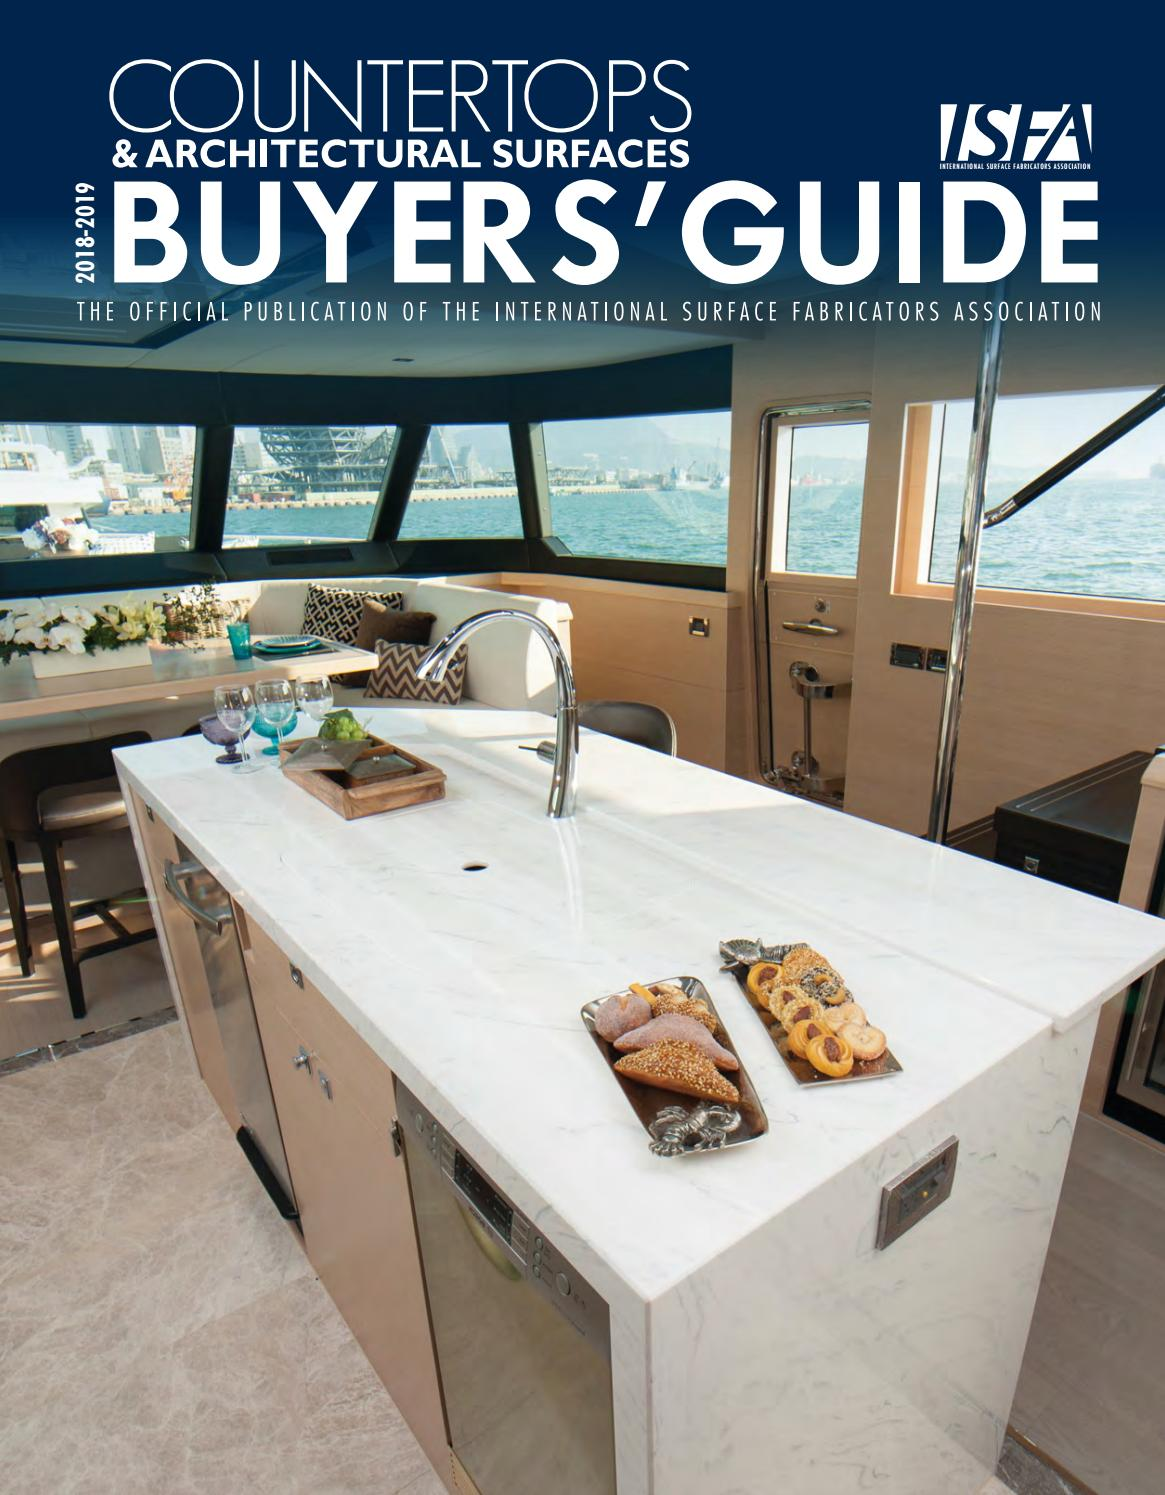 Isfa S Countertops Architectural Surfaces 2018 2019 Buyers Guide By Isfa Issuu